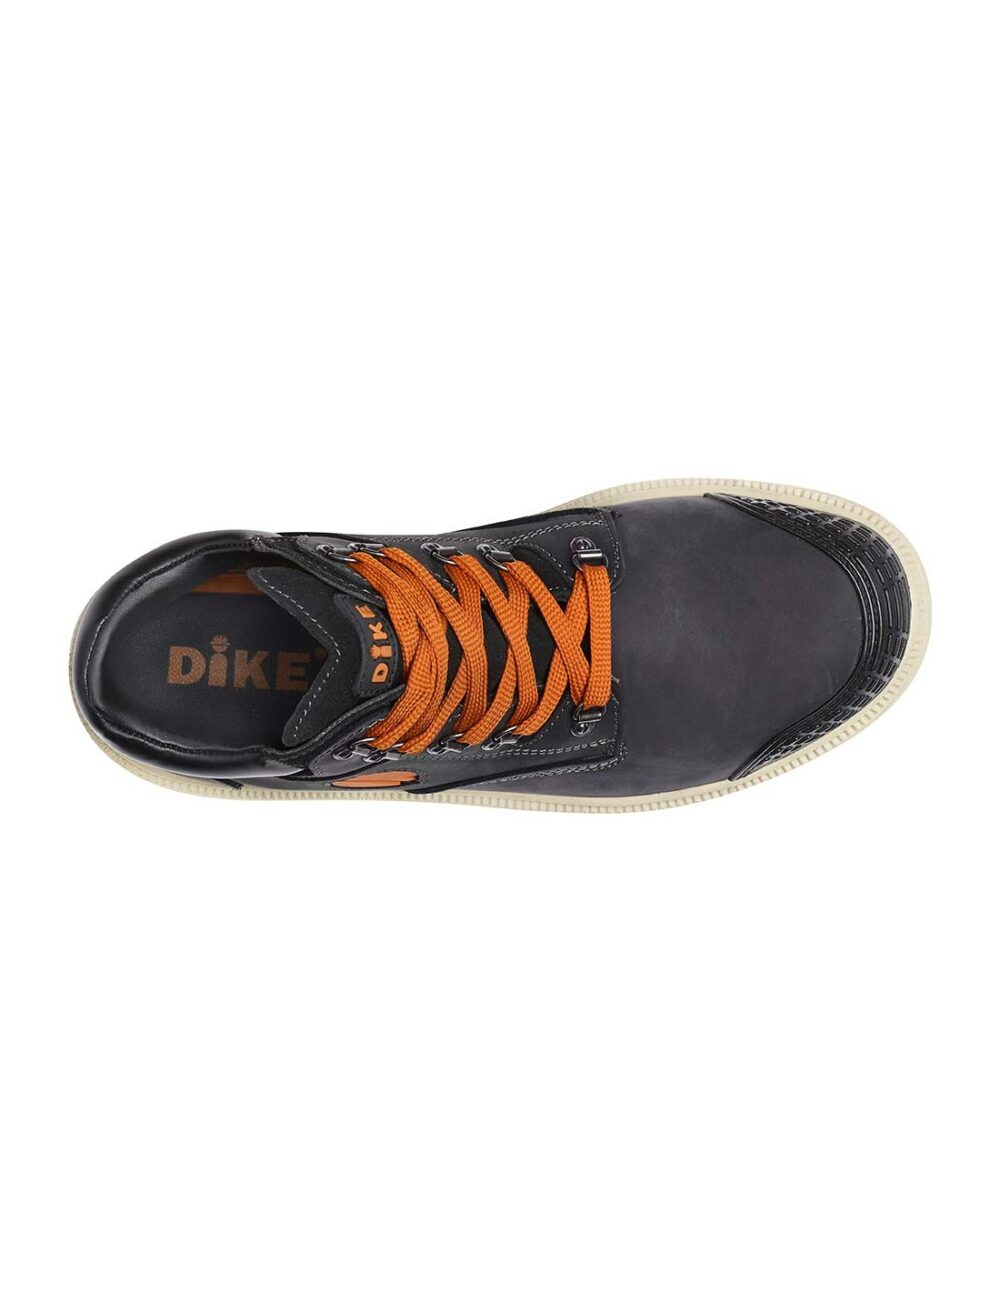 Black digger safety boot by dike